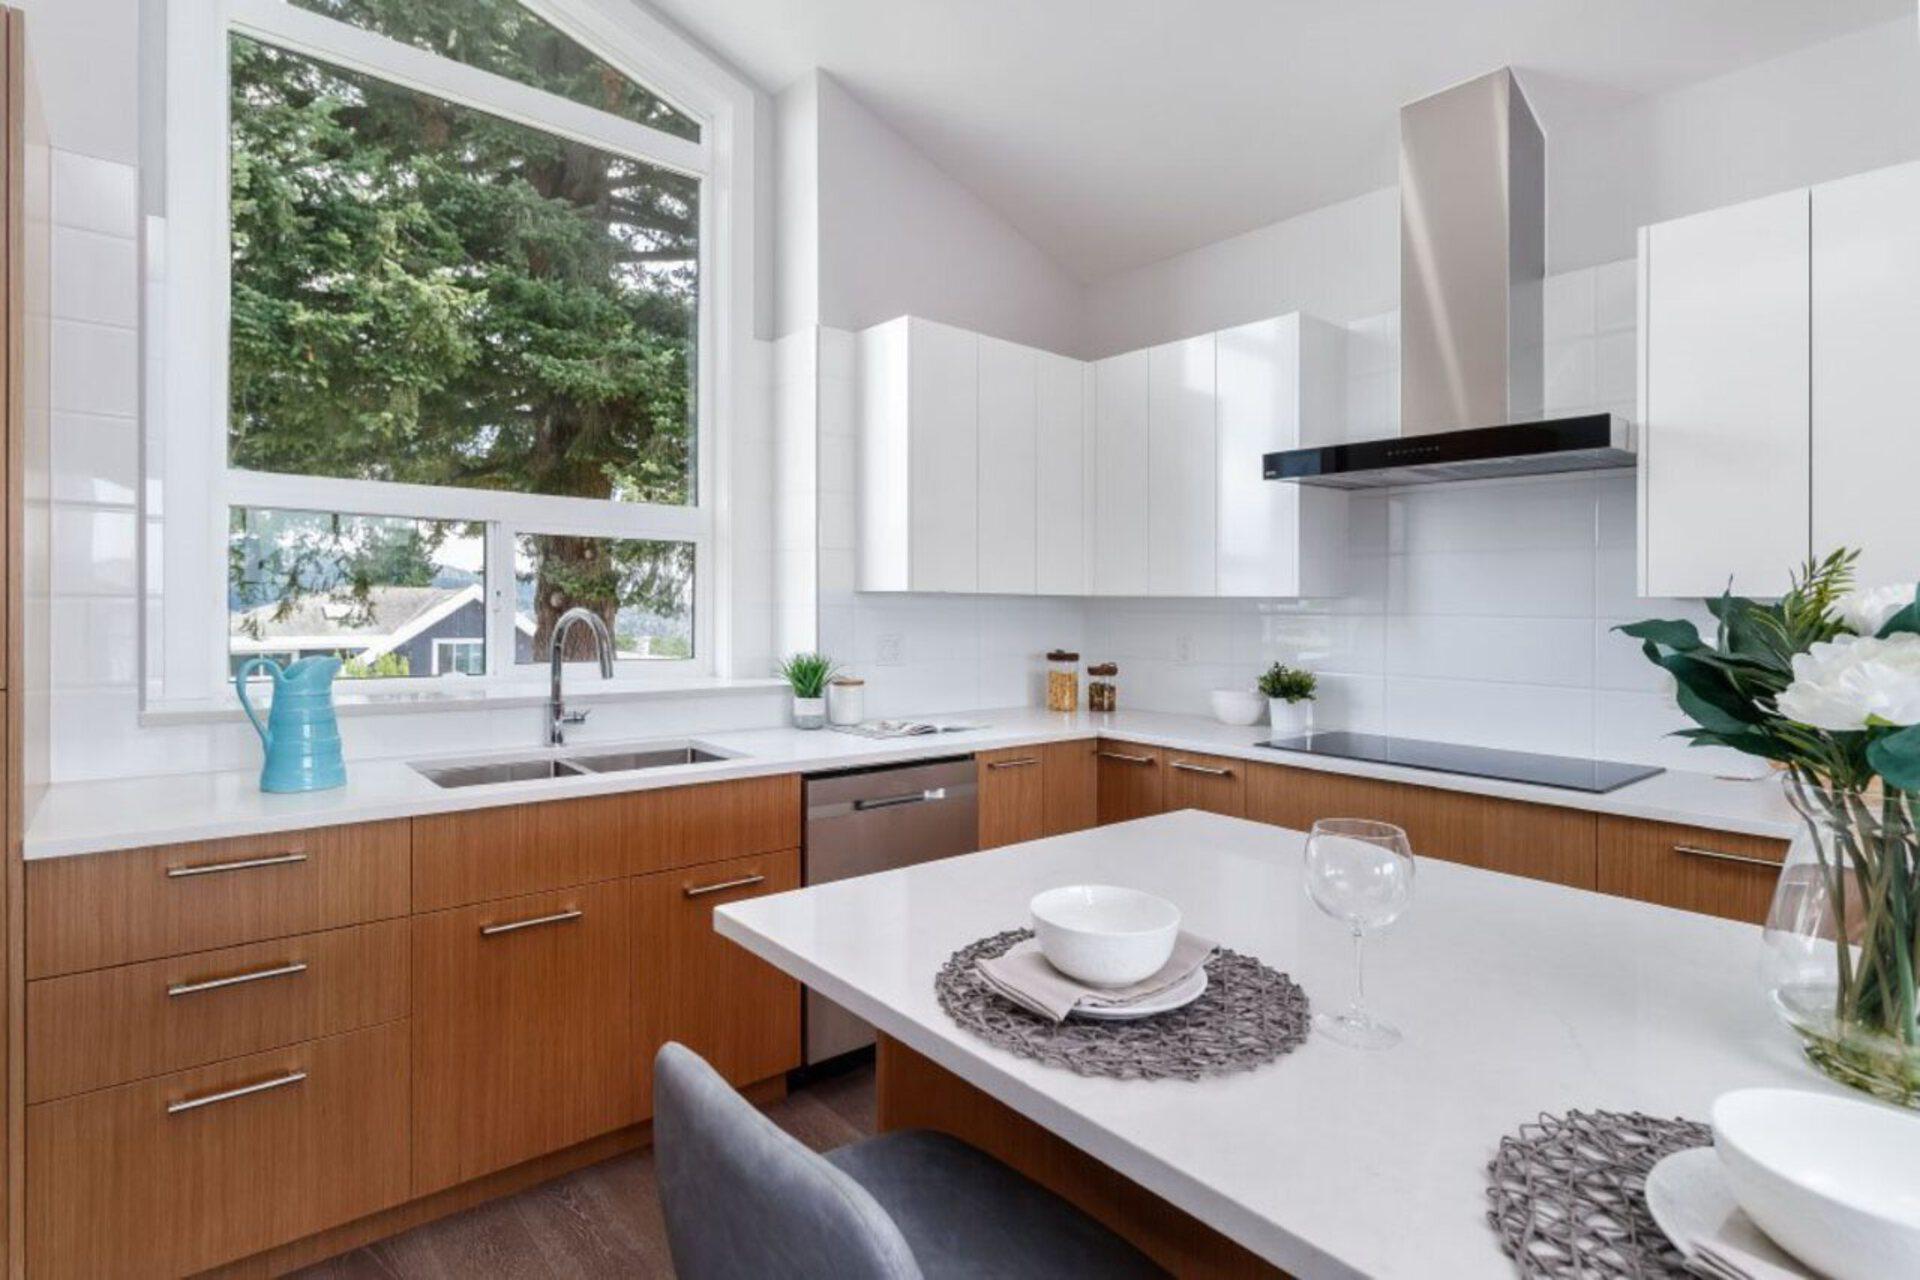 33-howard-avenue-capitol-hill-bn-burnaby-north-05 at 33 Howard Avenue, Capitol Hill BN, Burnaby North